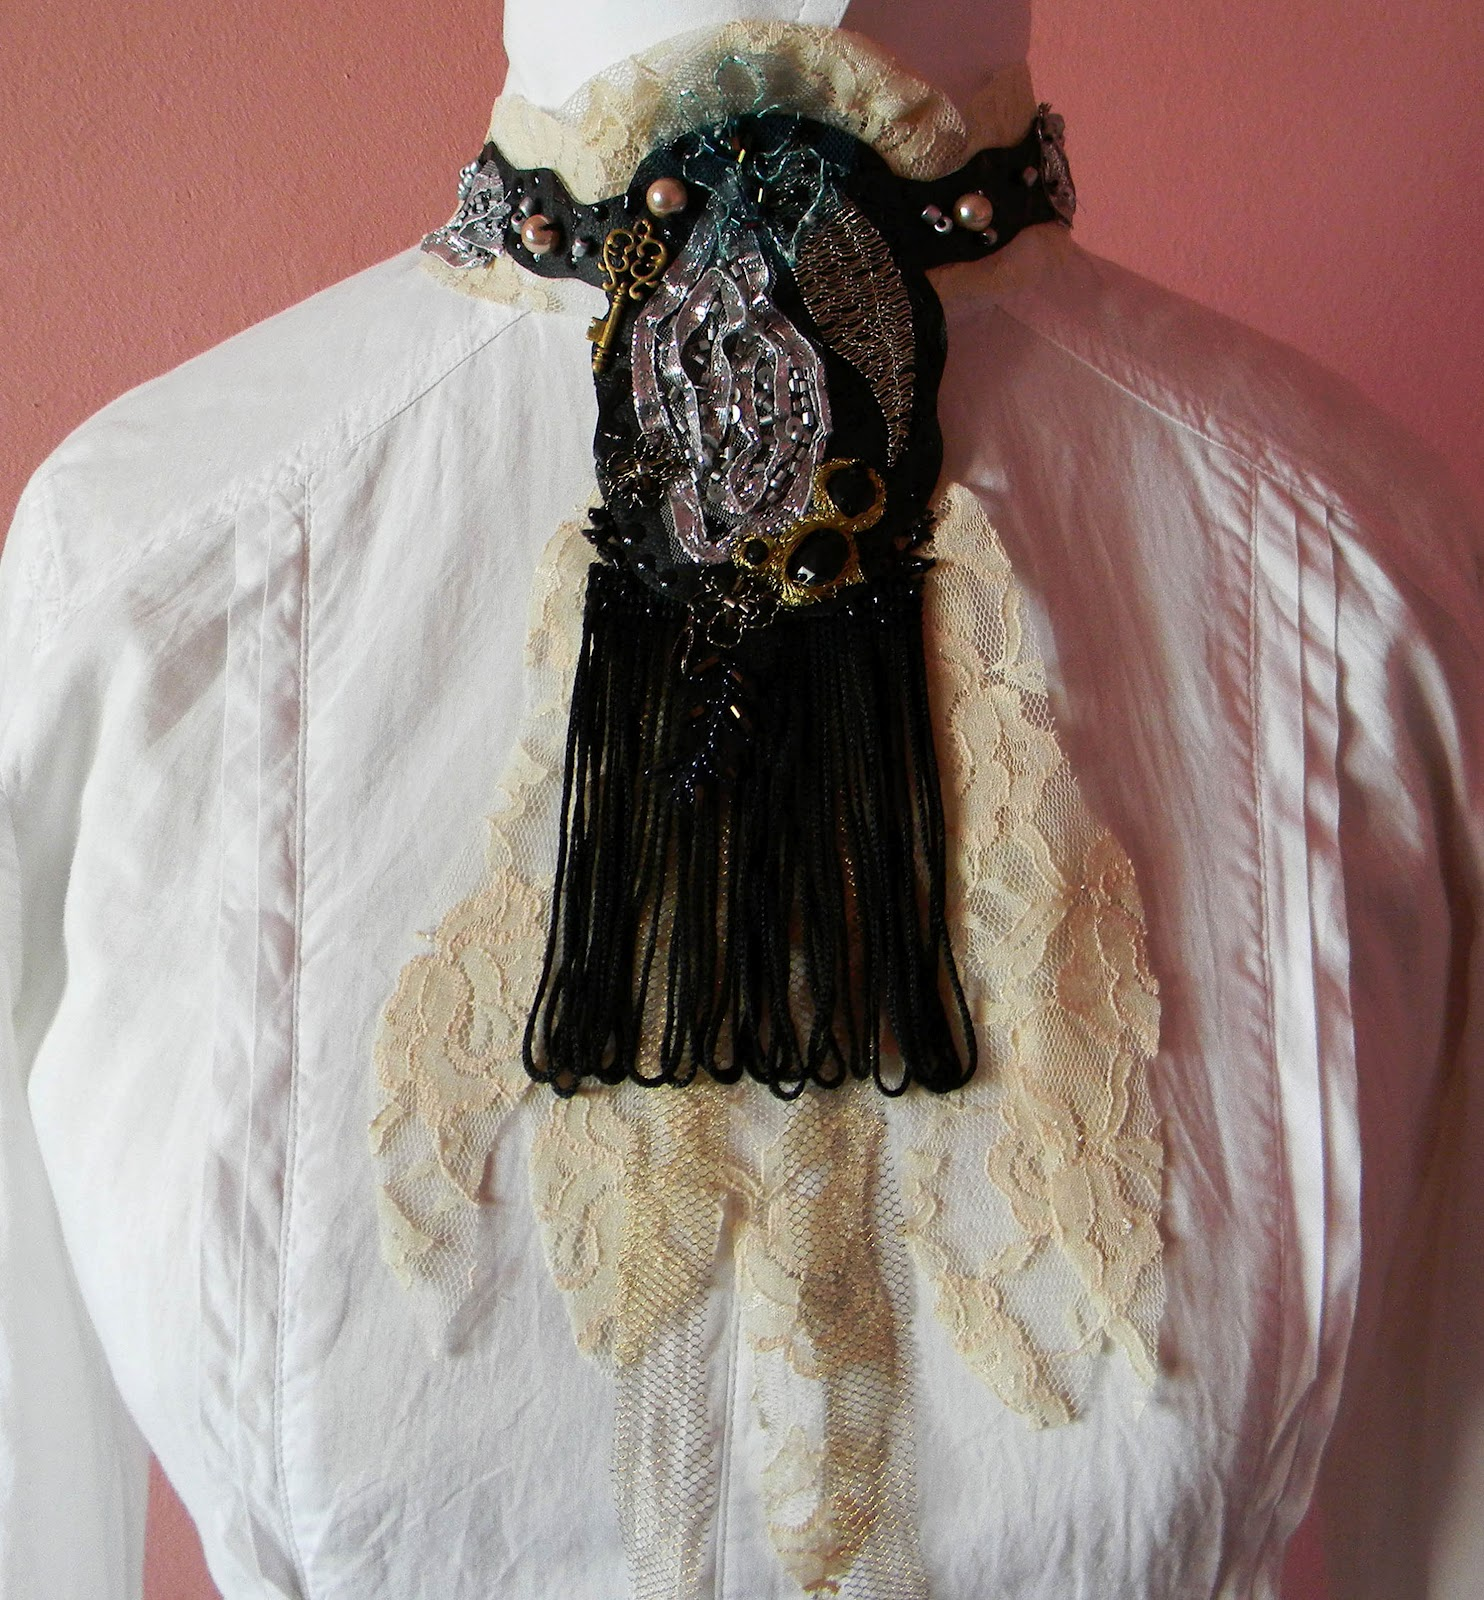 Charleston Jabot/Collar/Bib Vintage Look